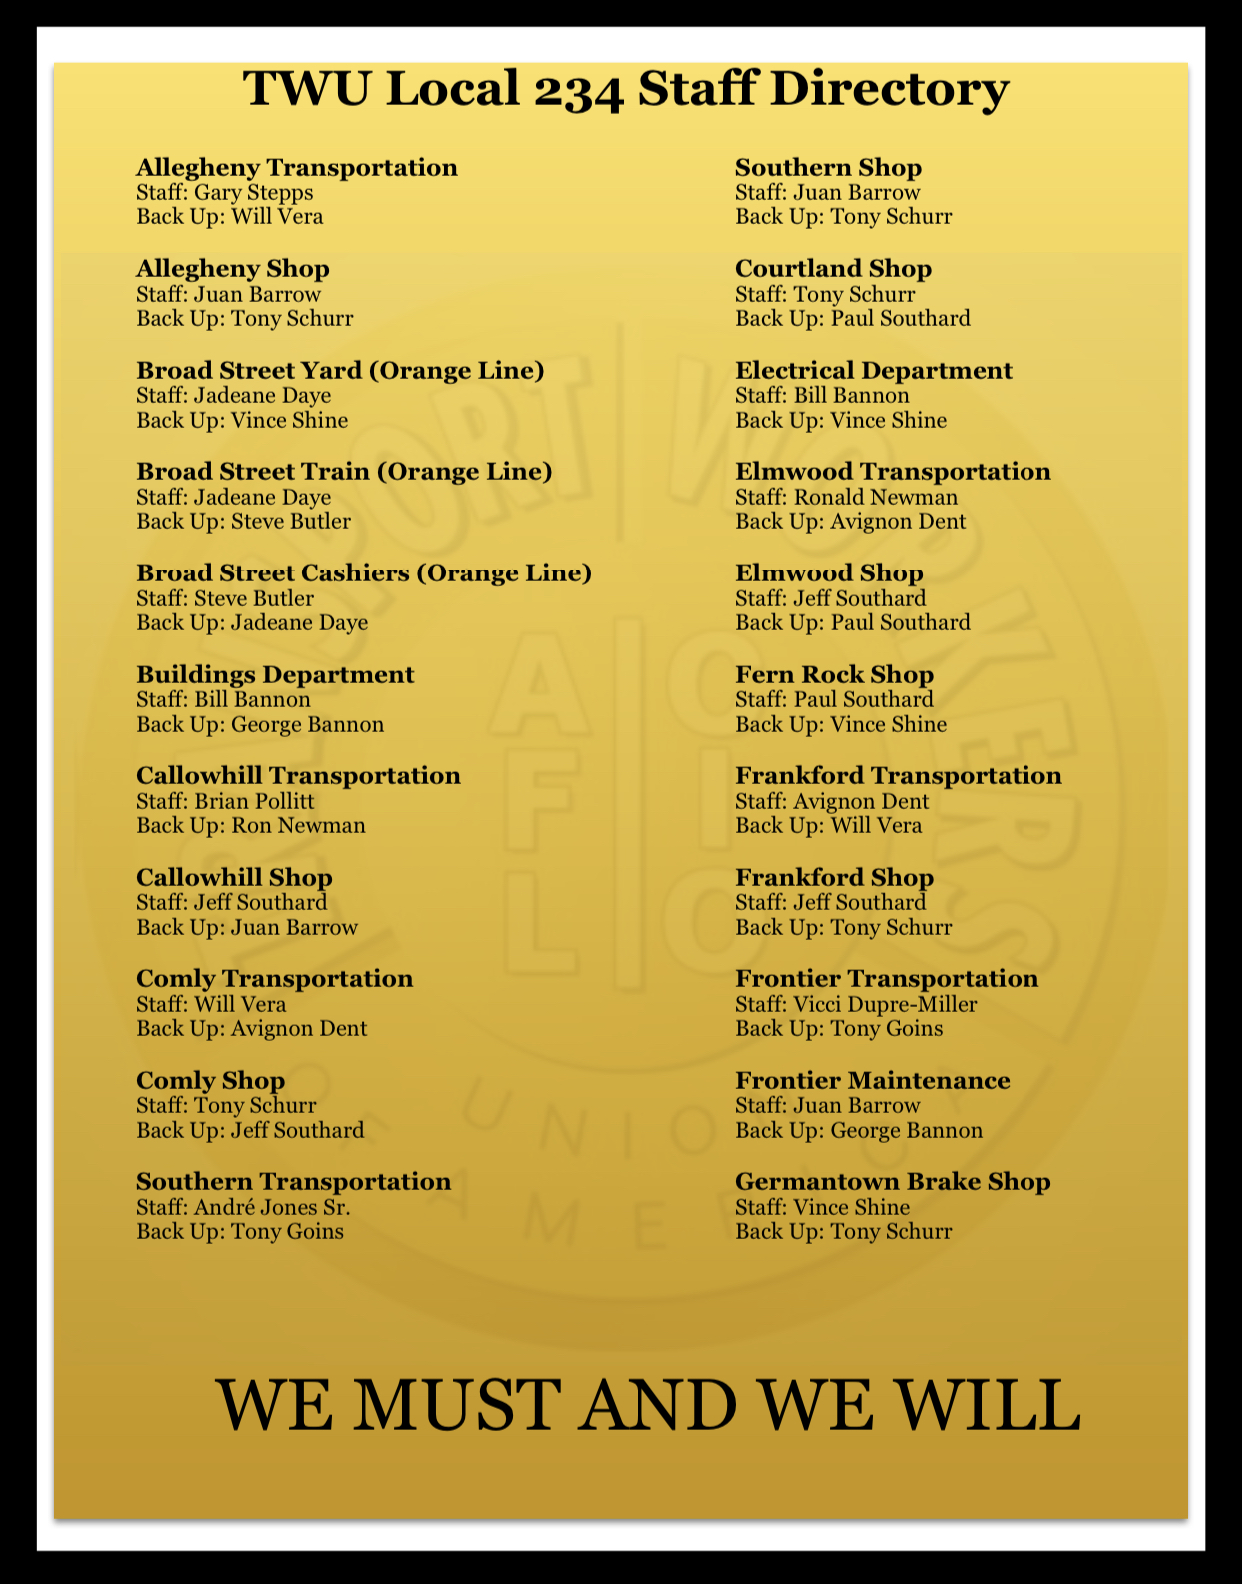 TWU Local 234 Staff Directory